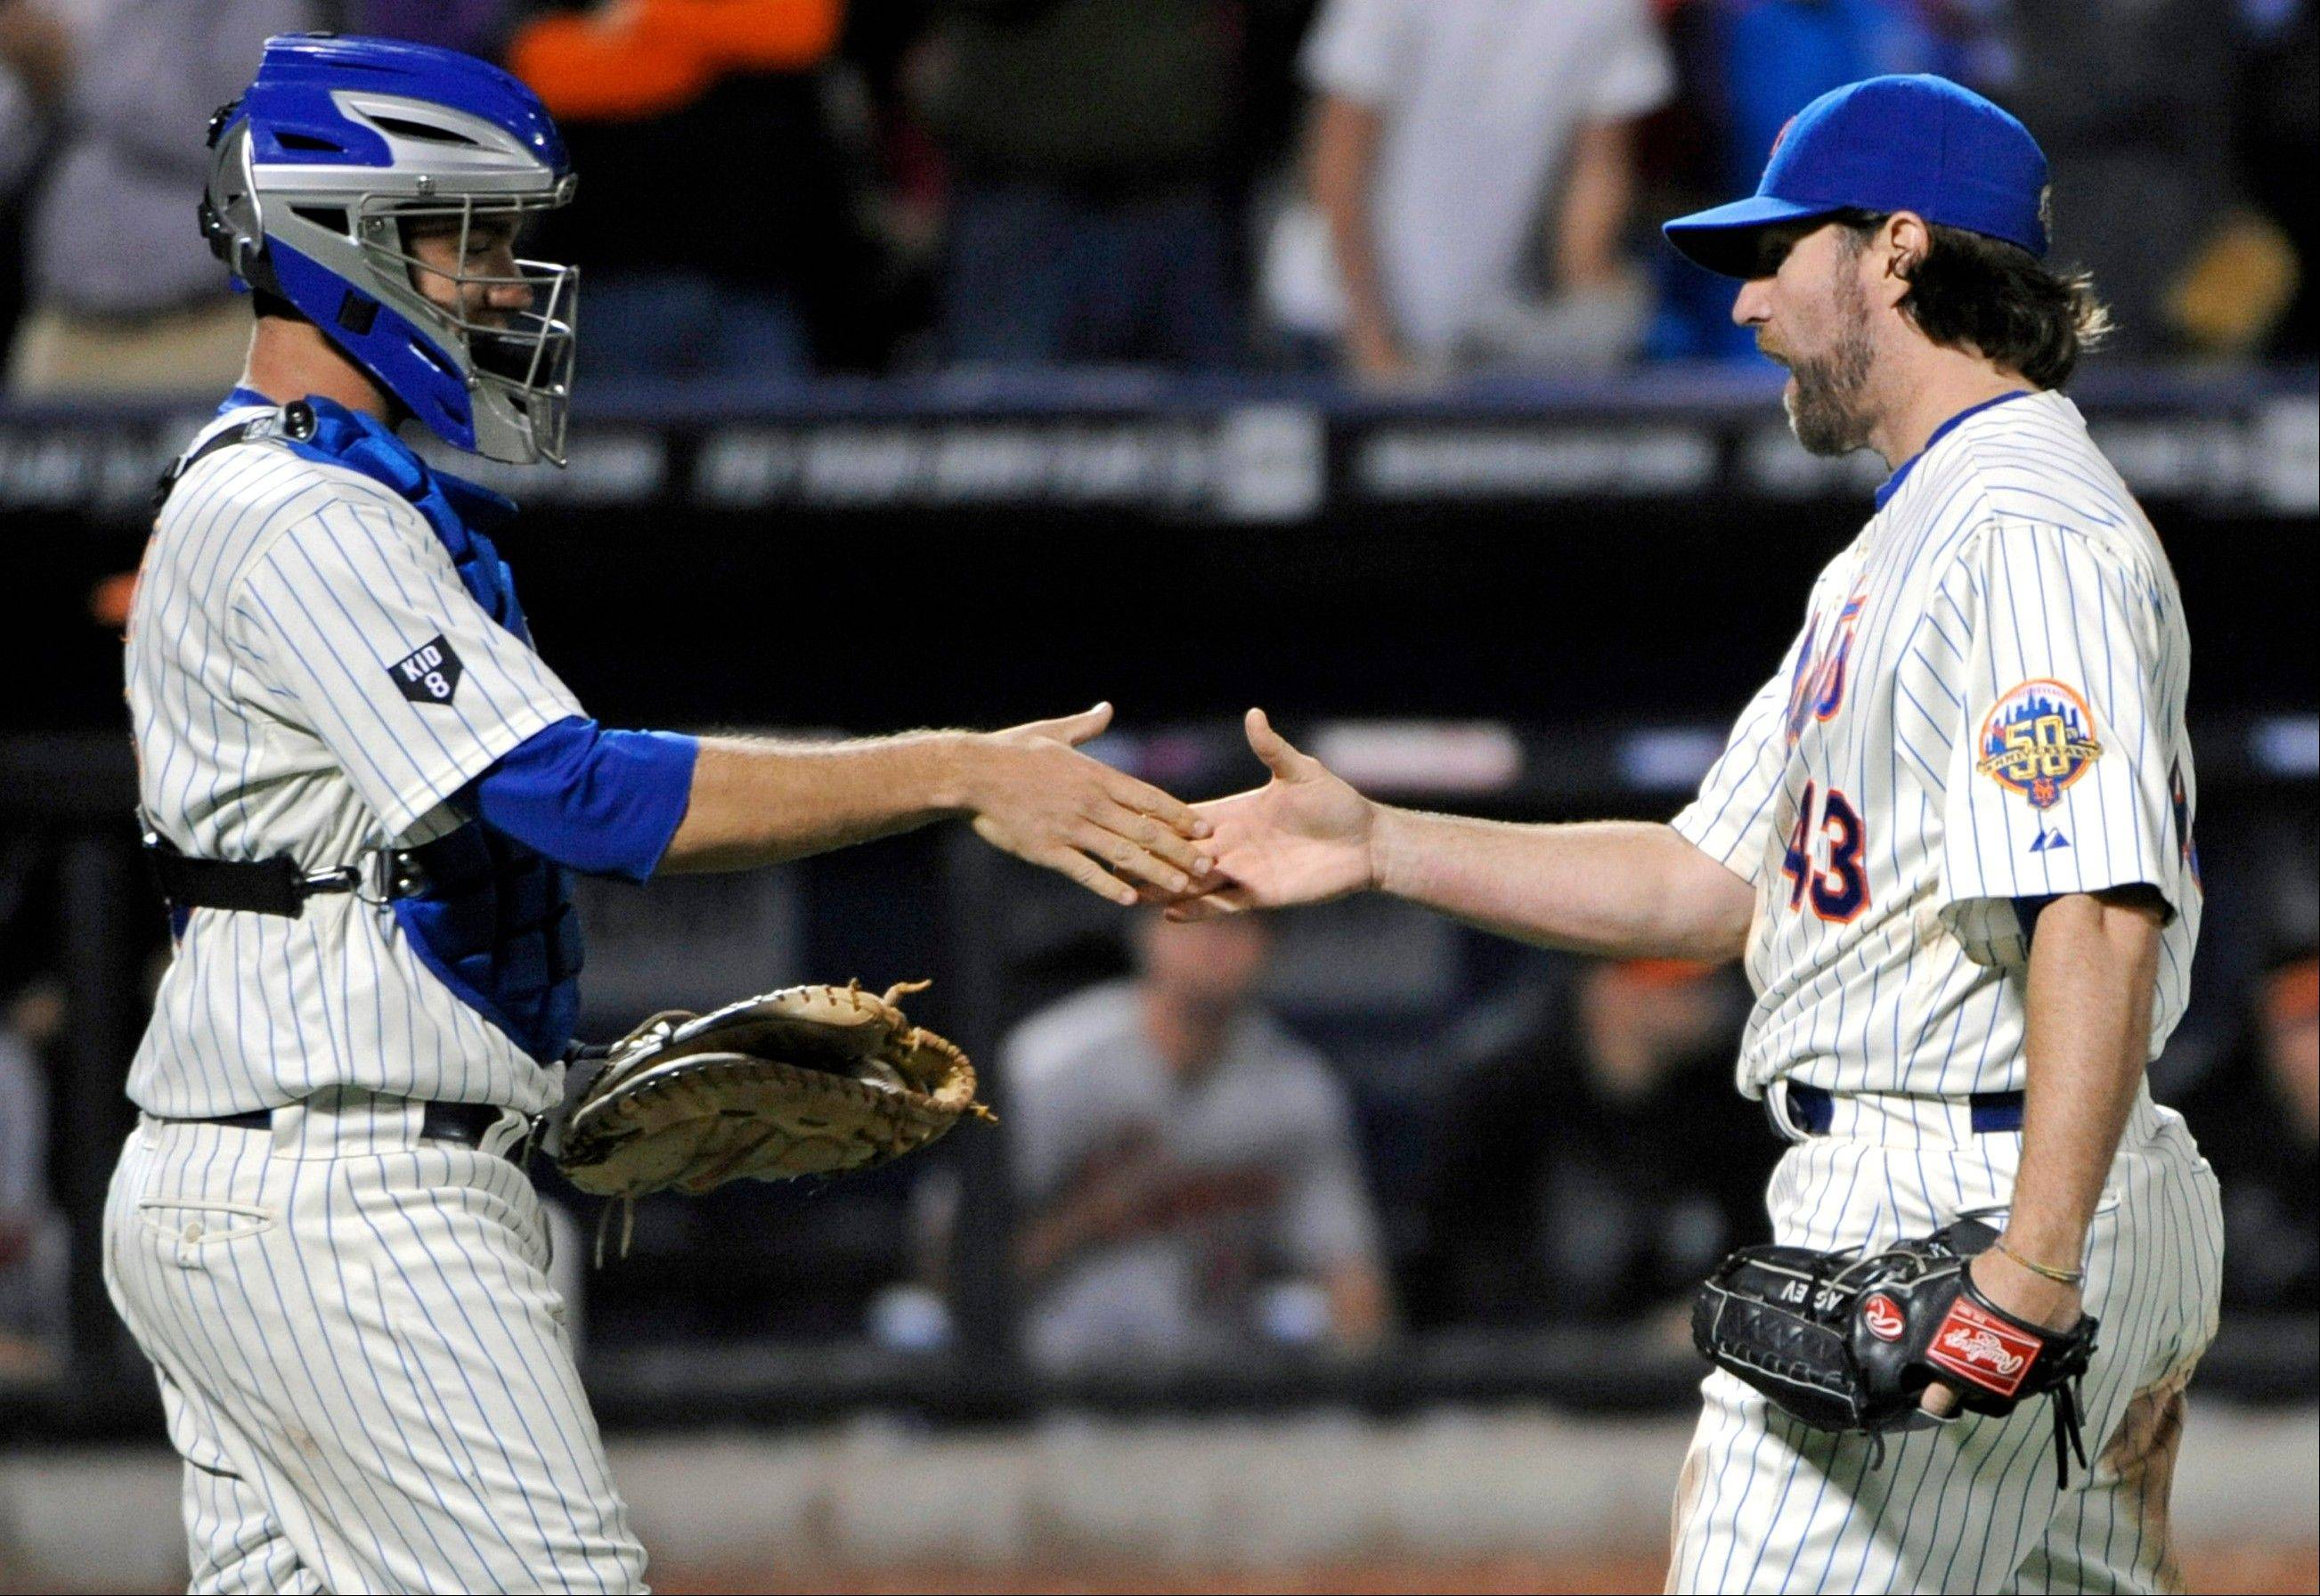 At age 37, New York Mets pitcher R.A. Dickey is enjoying a remarkable year, and his tell-all book about the challenges he has faced is even more amazing.